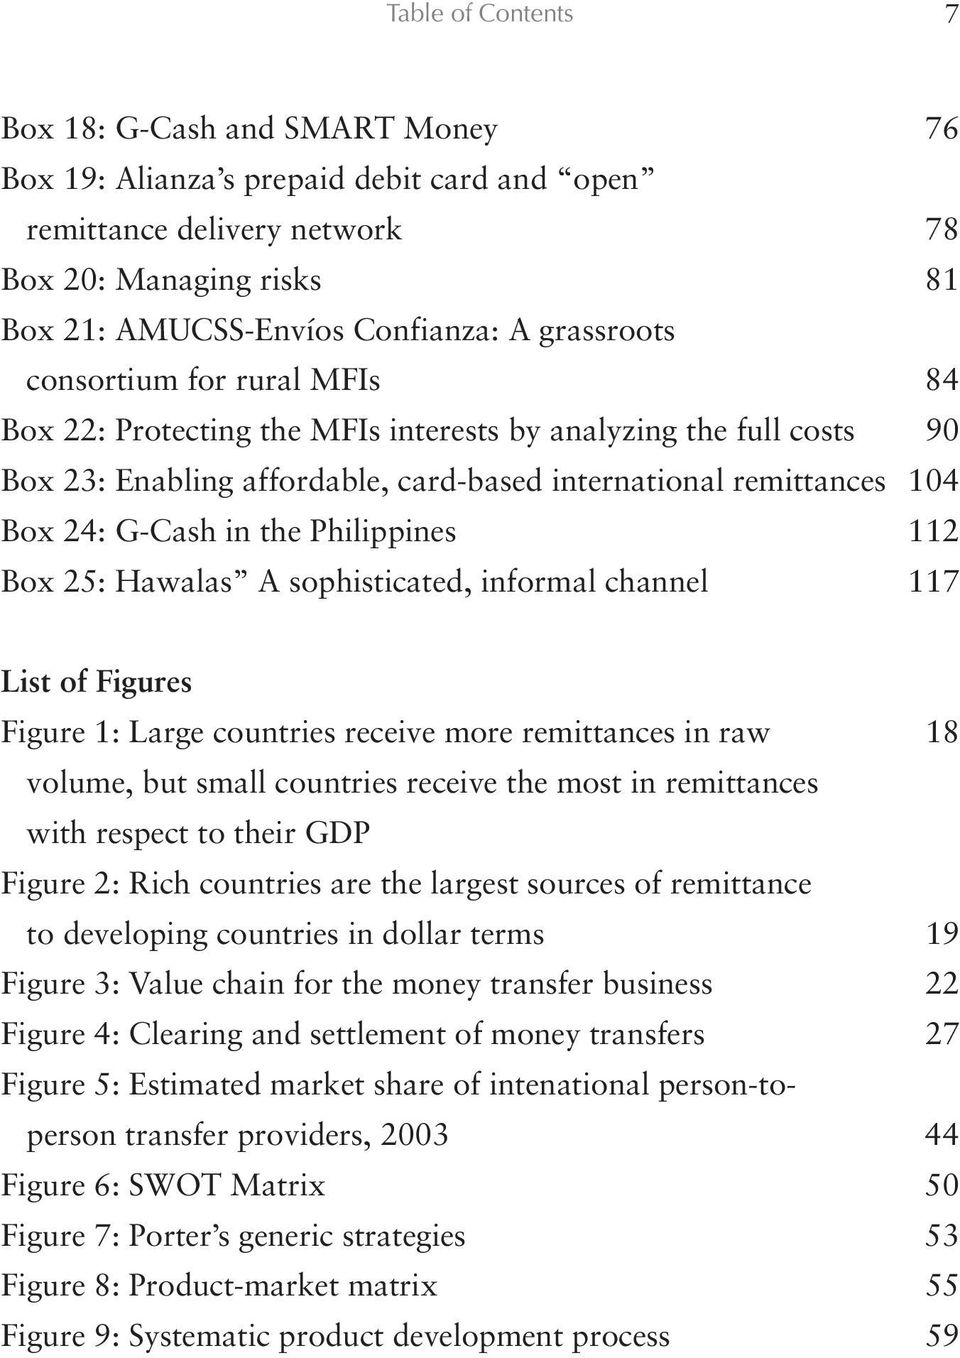 the Philippines 112 Box 25: Hawalas A sophisticated, informal channel 117 List of Figures Figure 1: Large countries receive more remittances in raw 18 volume, but small countries receive the most in